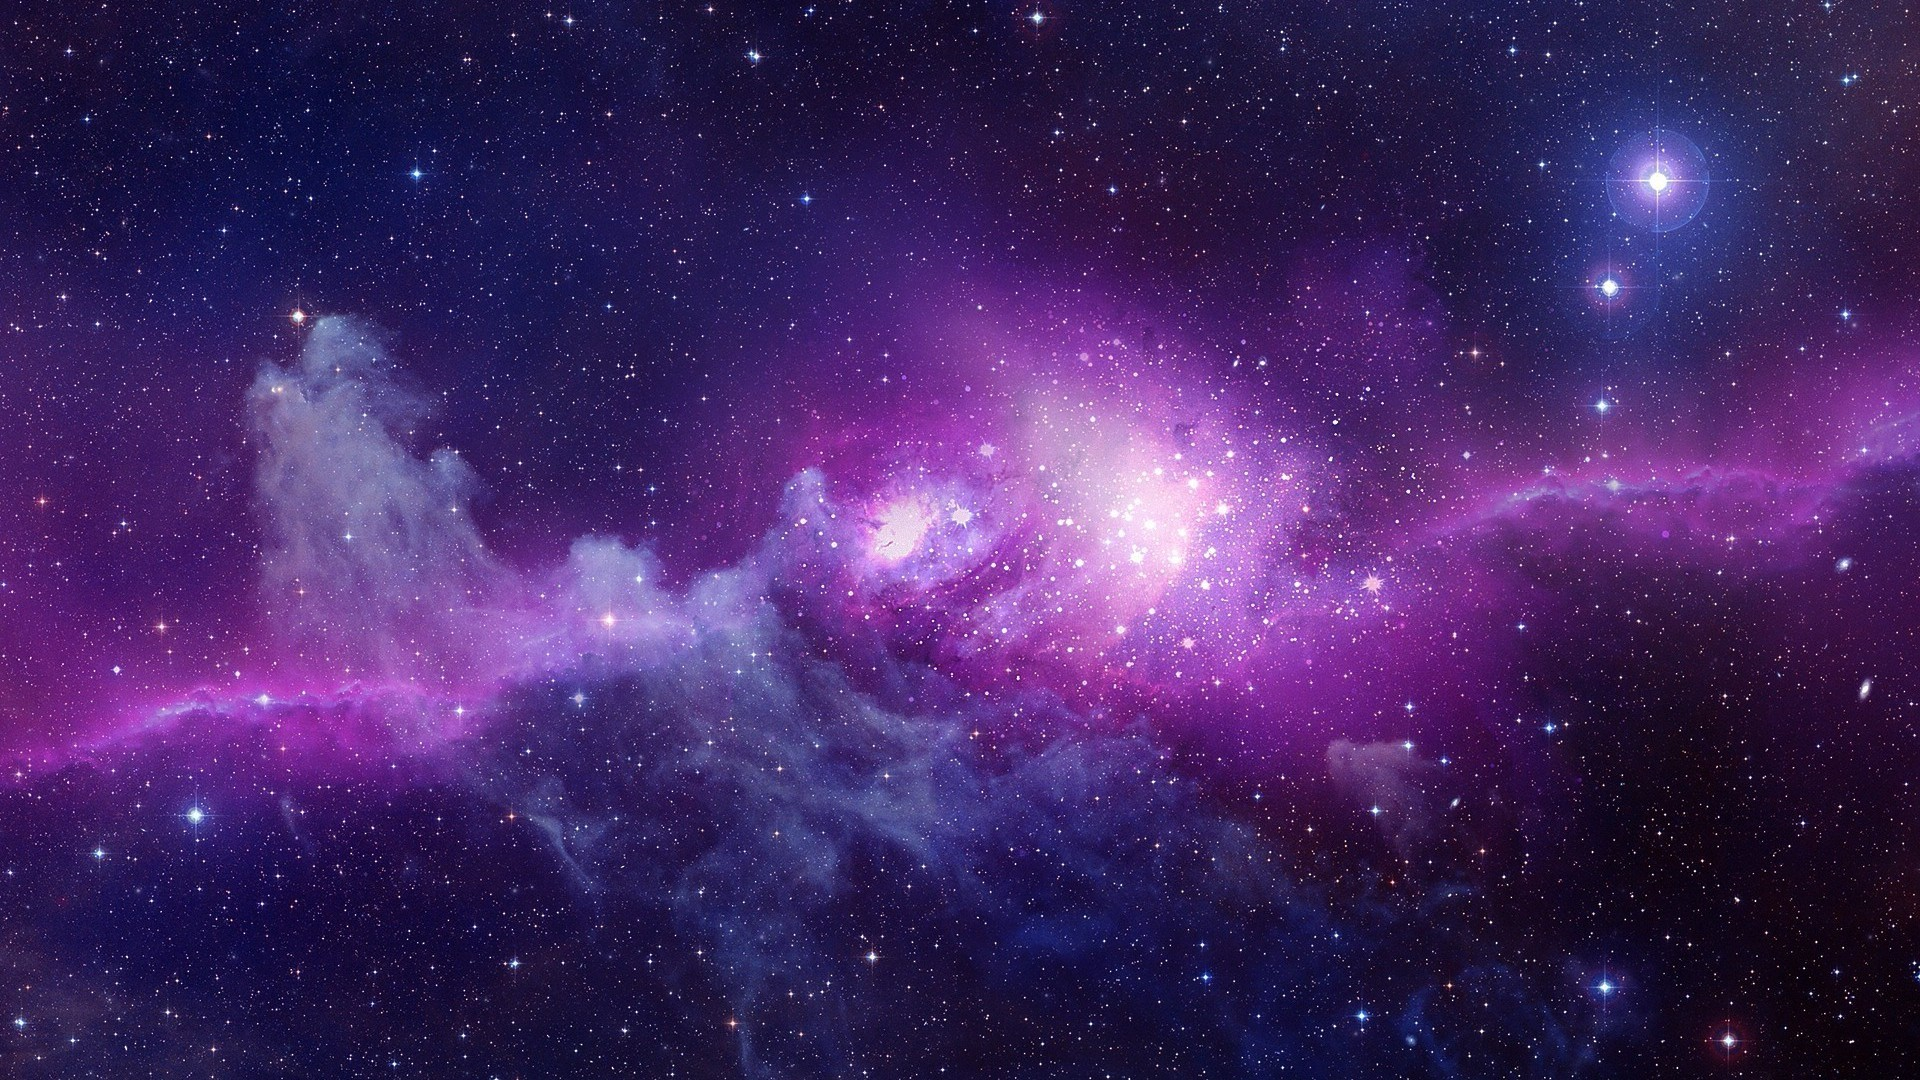 1920x1080 purple-galaxy-space-hd-wallpapers-